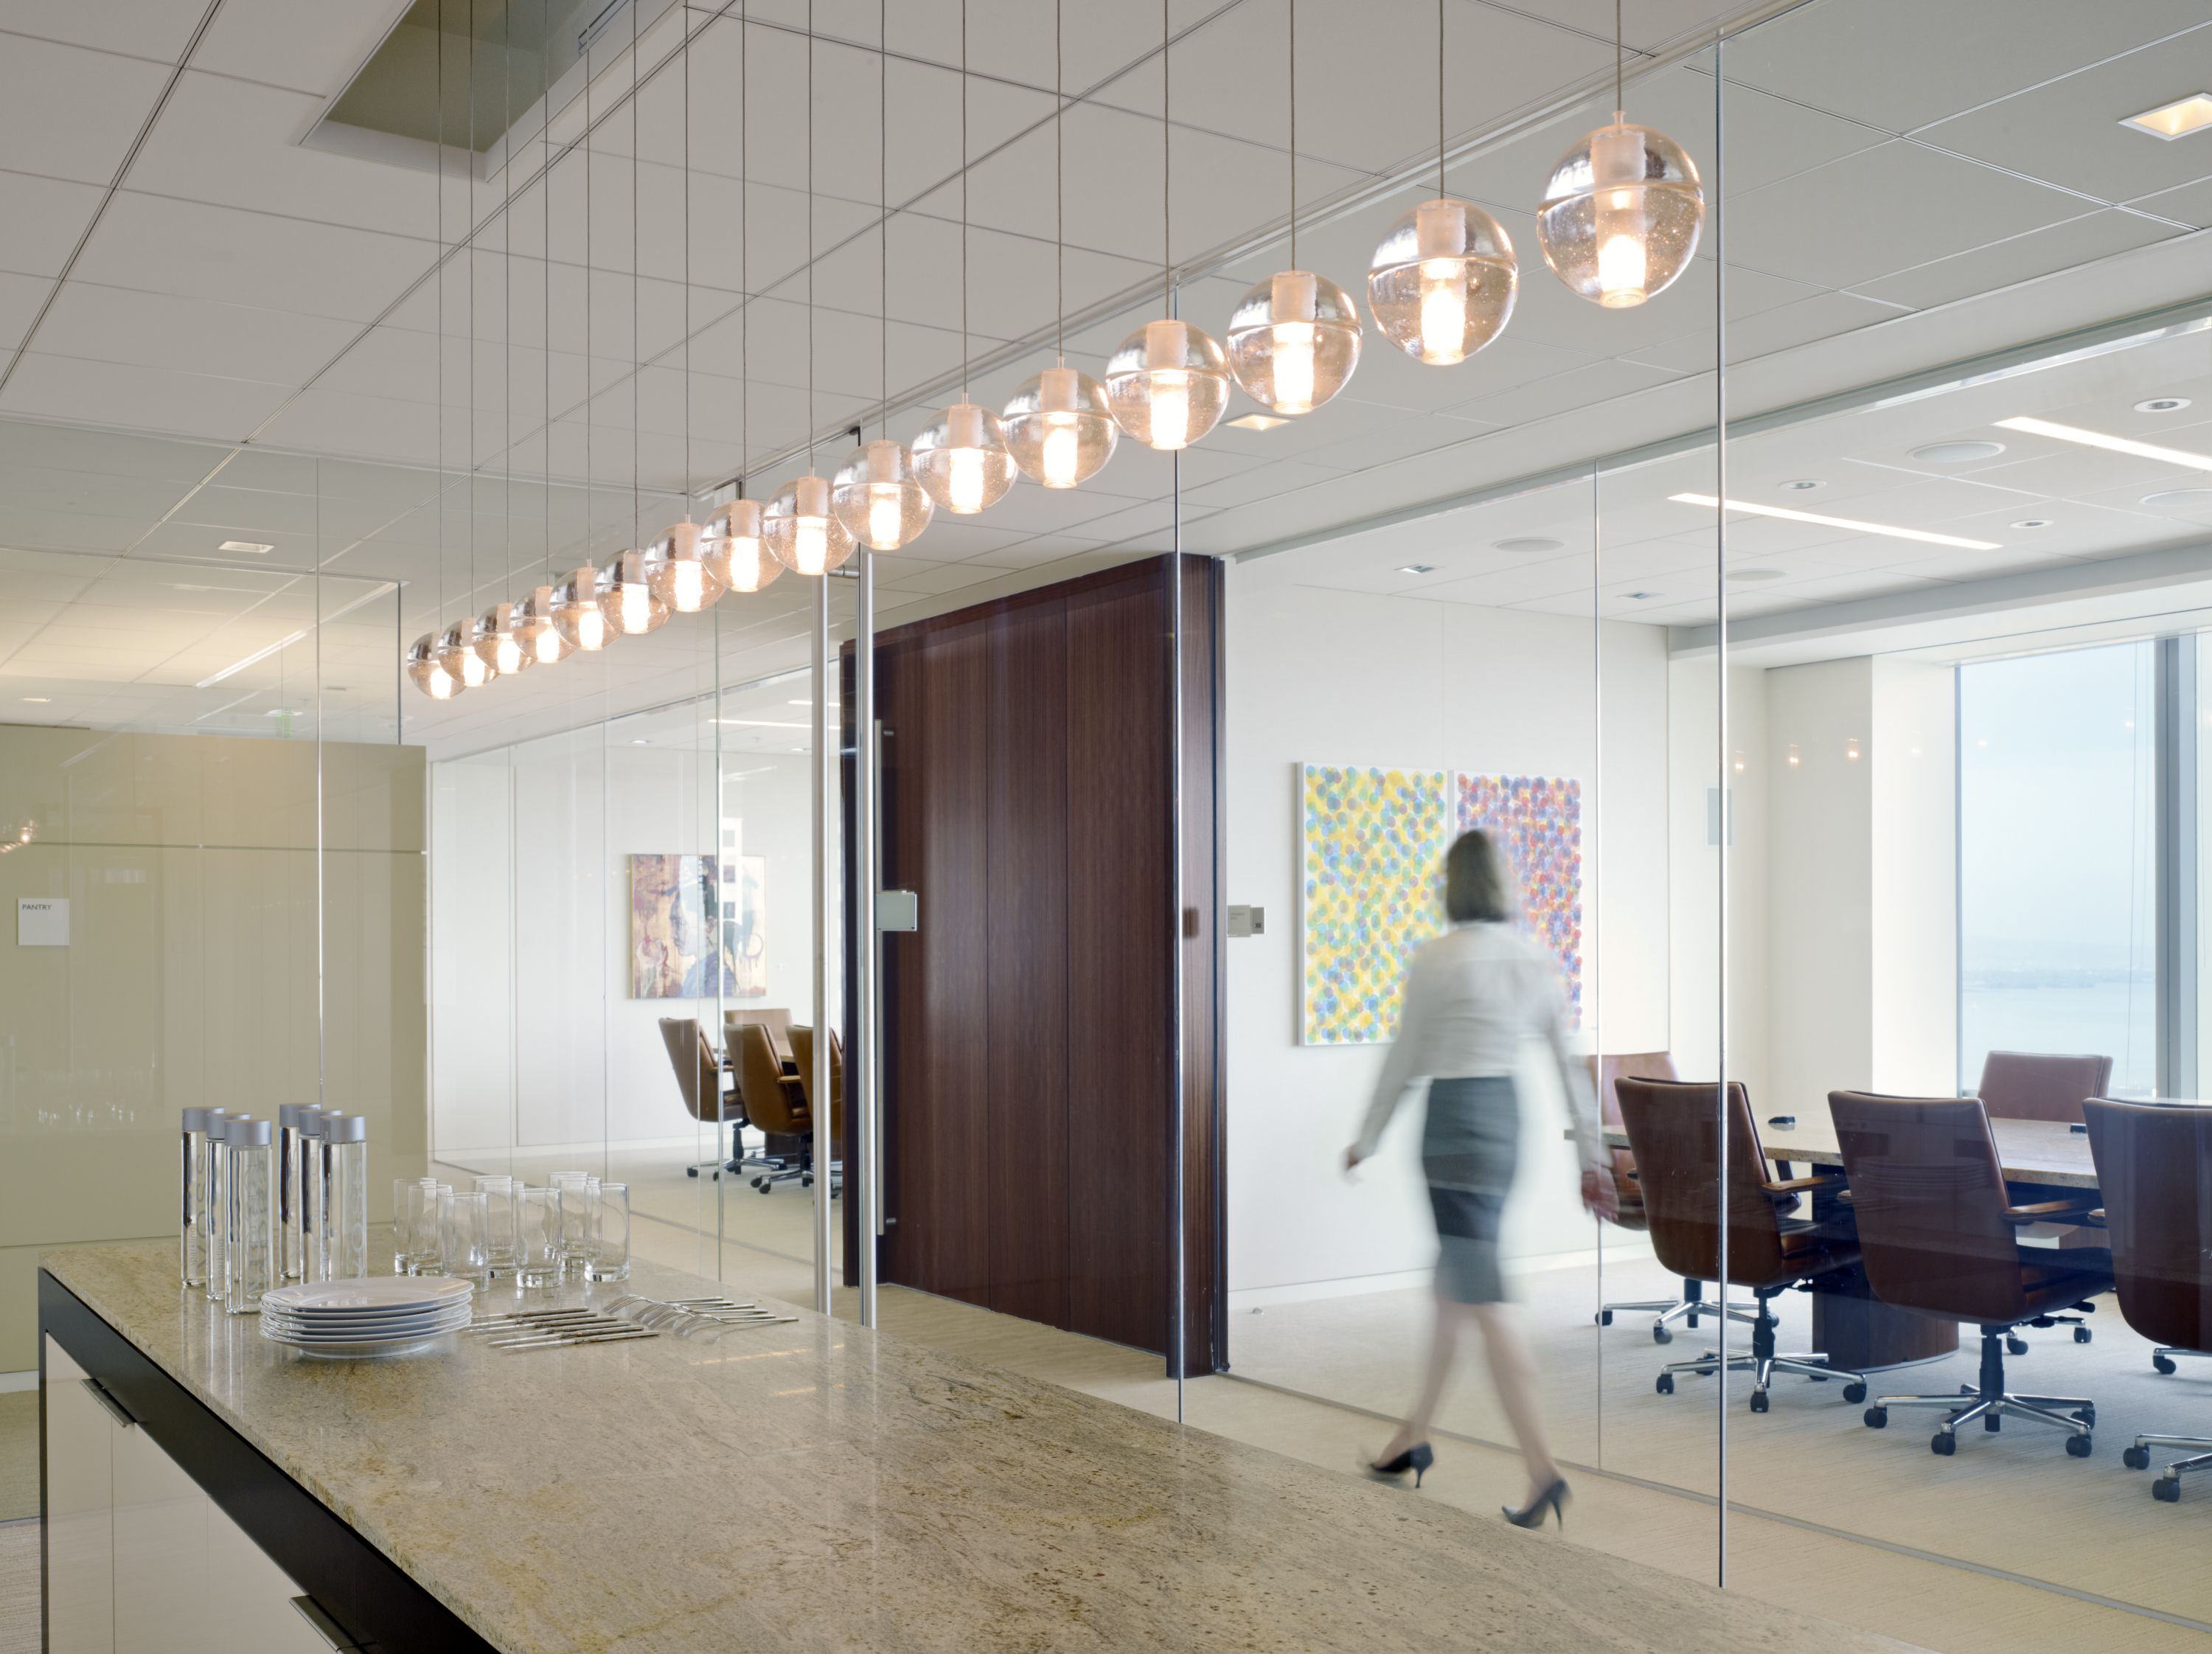 Office Design San Francisco Major Trends In Urban & Suburban Law Firm Office Space Design .